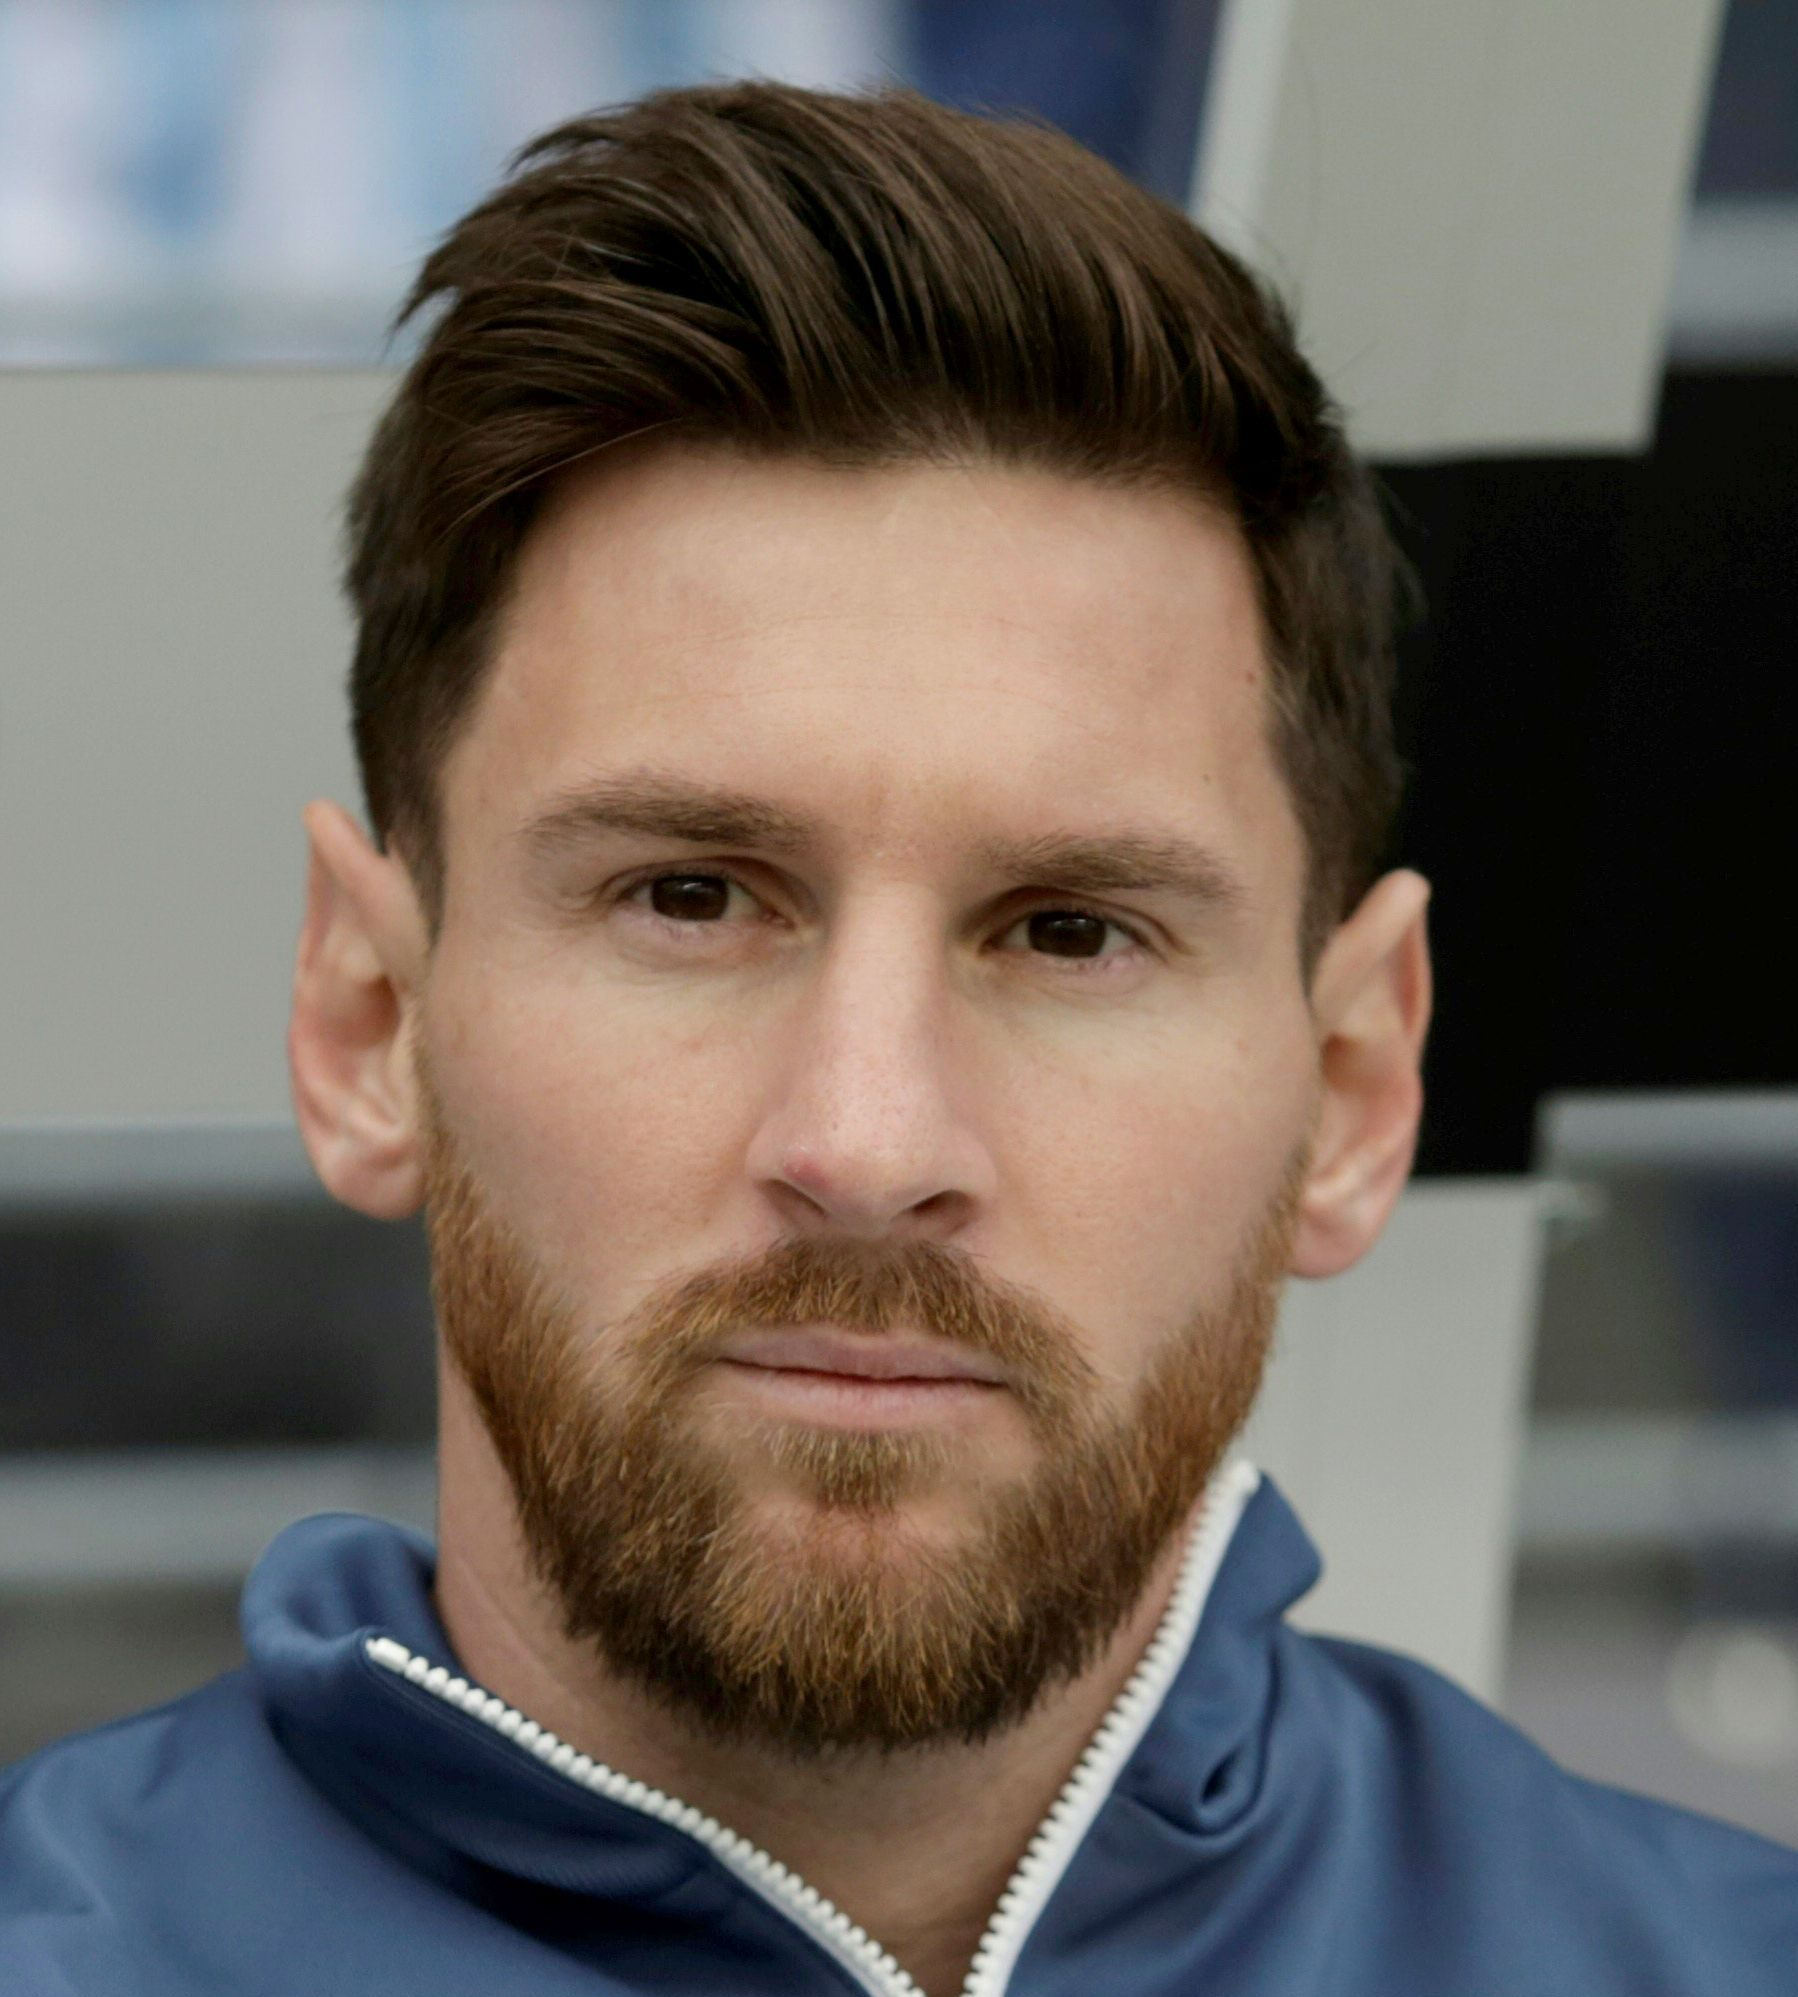 Messi Haircuts The Best Haircut Of 2018